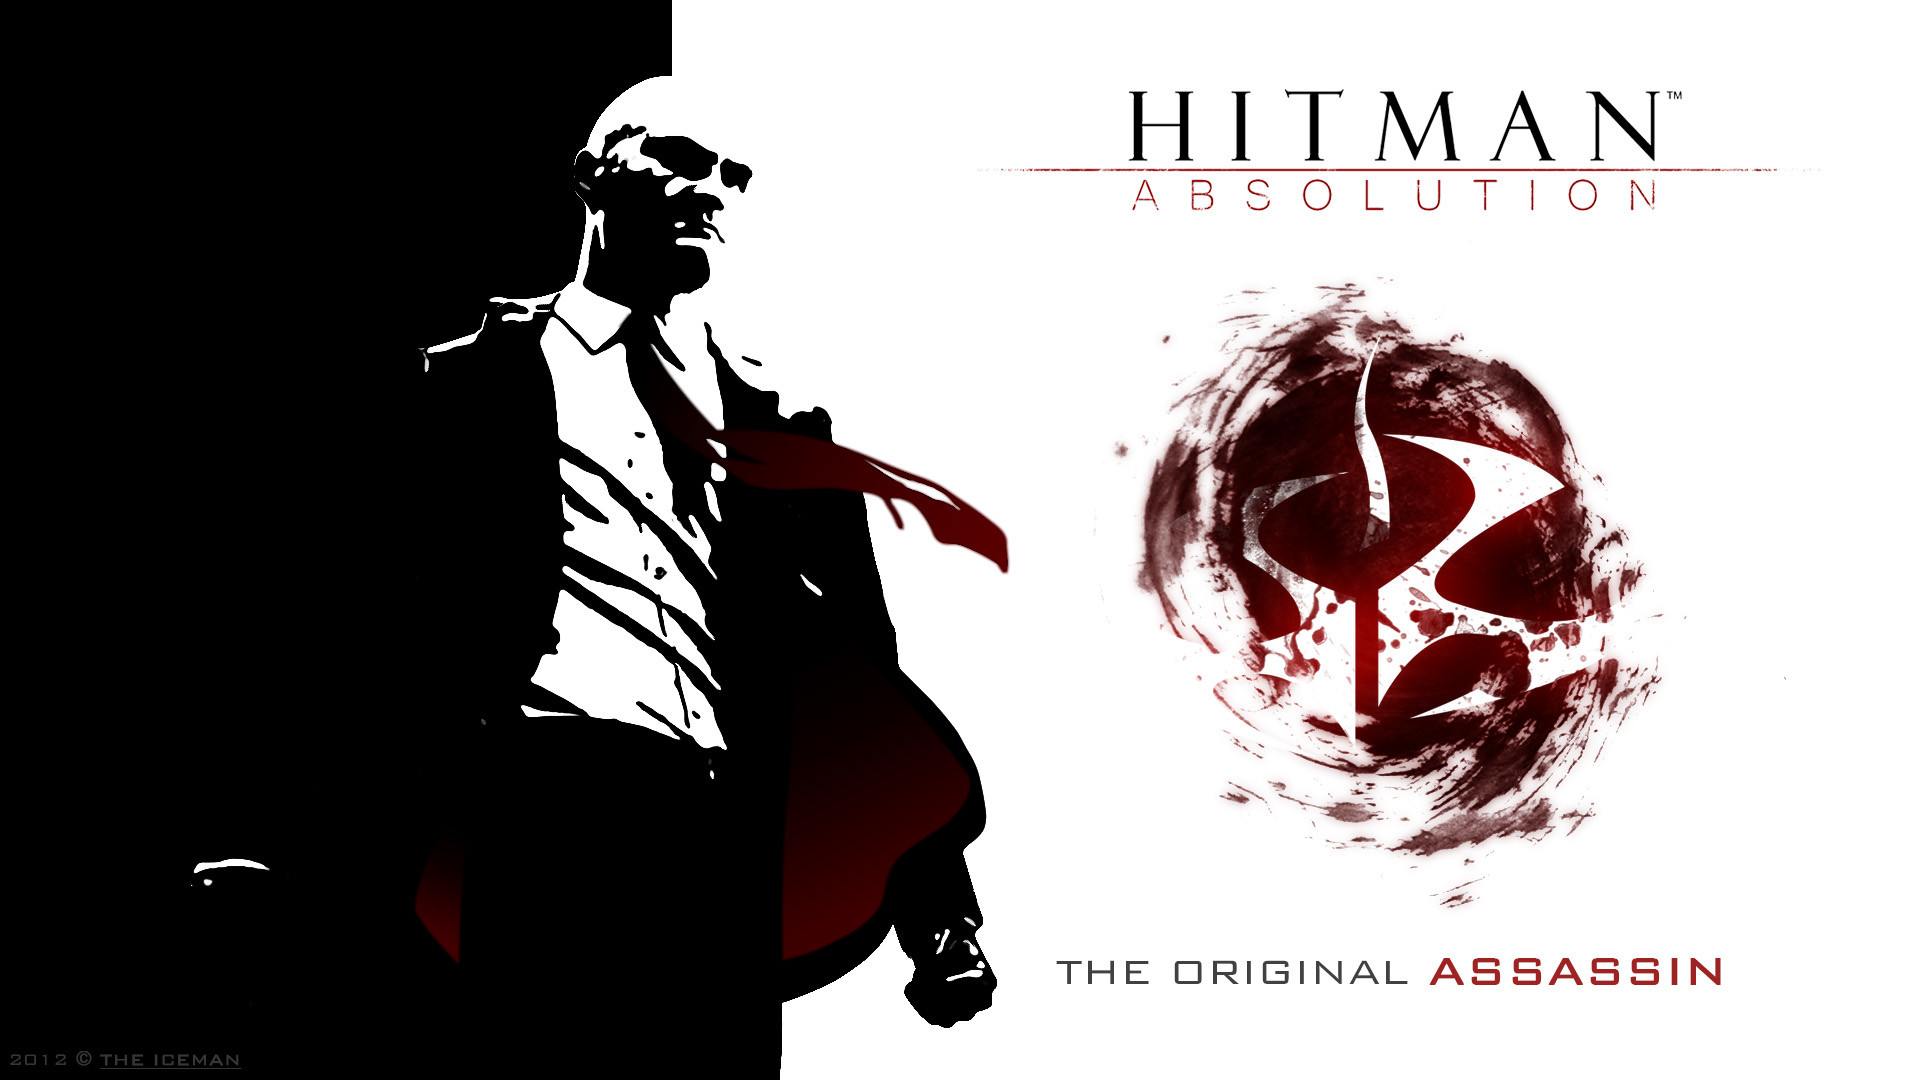 1920x1080 ... Hitman Absolution Wallpaper - Agent 47 (Full HD) by TheIcemanPL